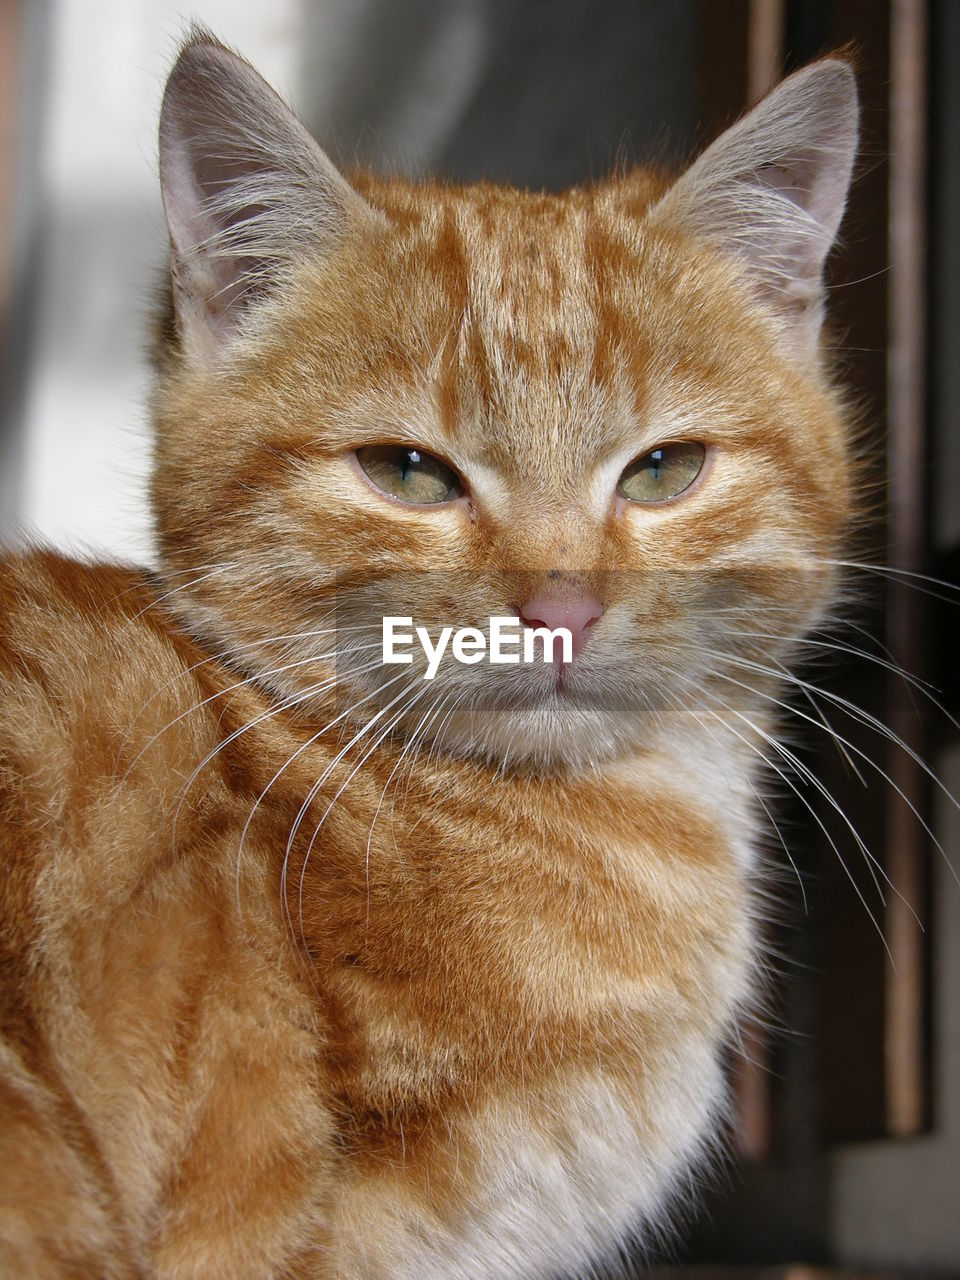 mammal, domestic, animal themes, animal, domestic animals, domestic cat, one animal, cat, pets, feline, whisker, close-up, focus on foreground, no people, vertebrate, portrait, looking at camera, animal body part, animal head, brown, ginger cat, animal eye